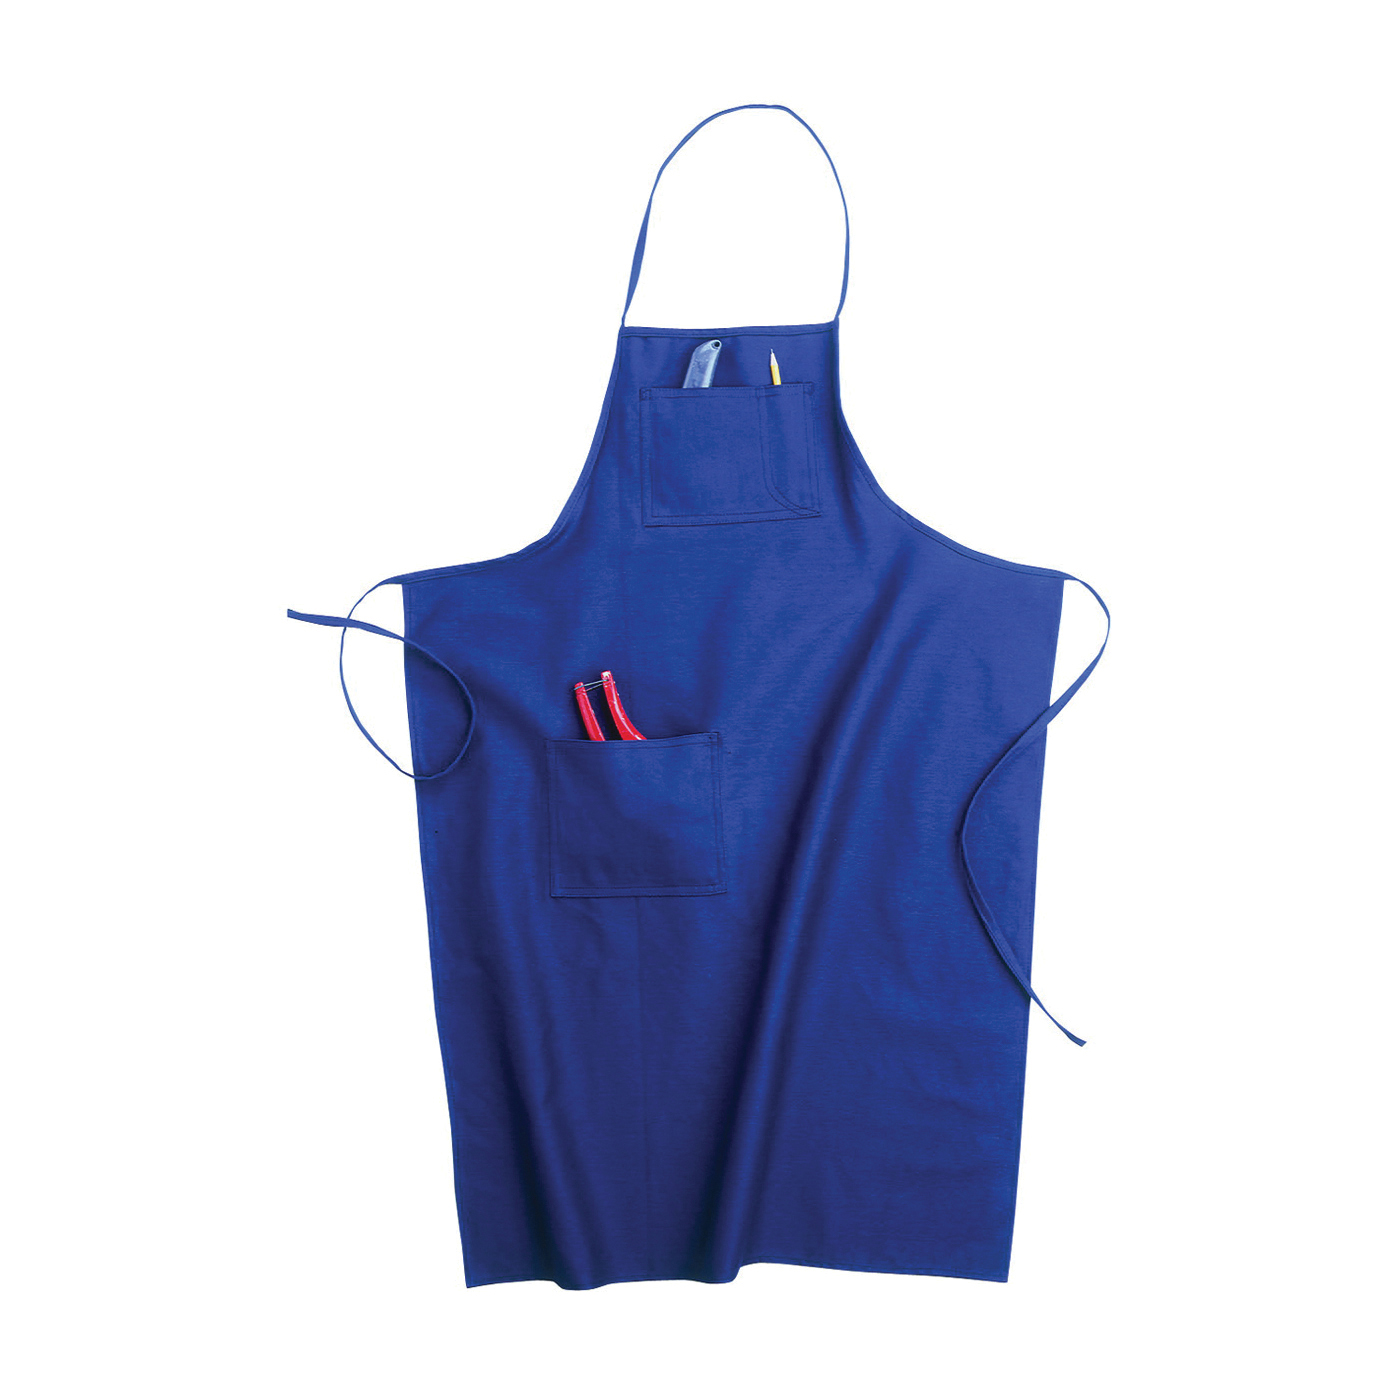 Picture of CLC Tool Works BS60 Loop Neck Bib Apron, 29 to 46 in Waist, Cotton, Blue, 3 -Pocket